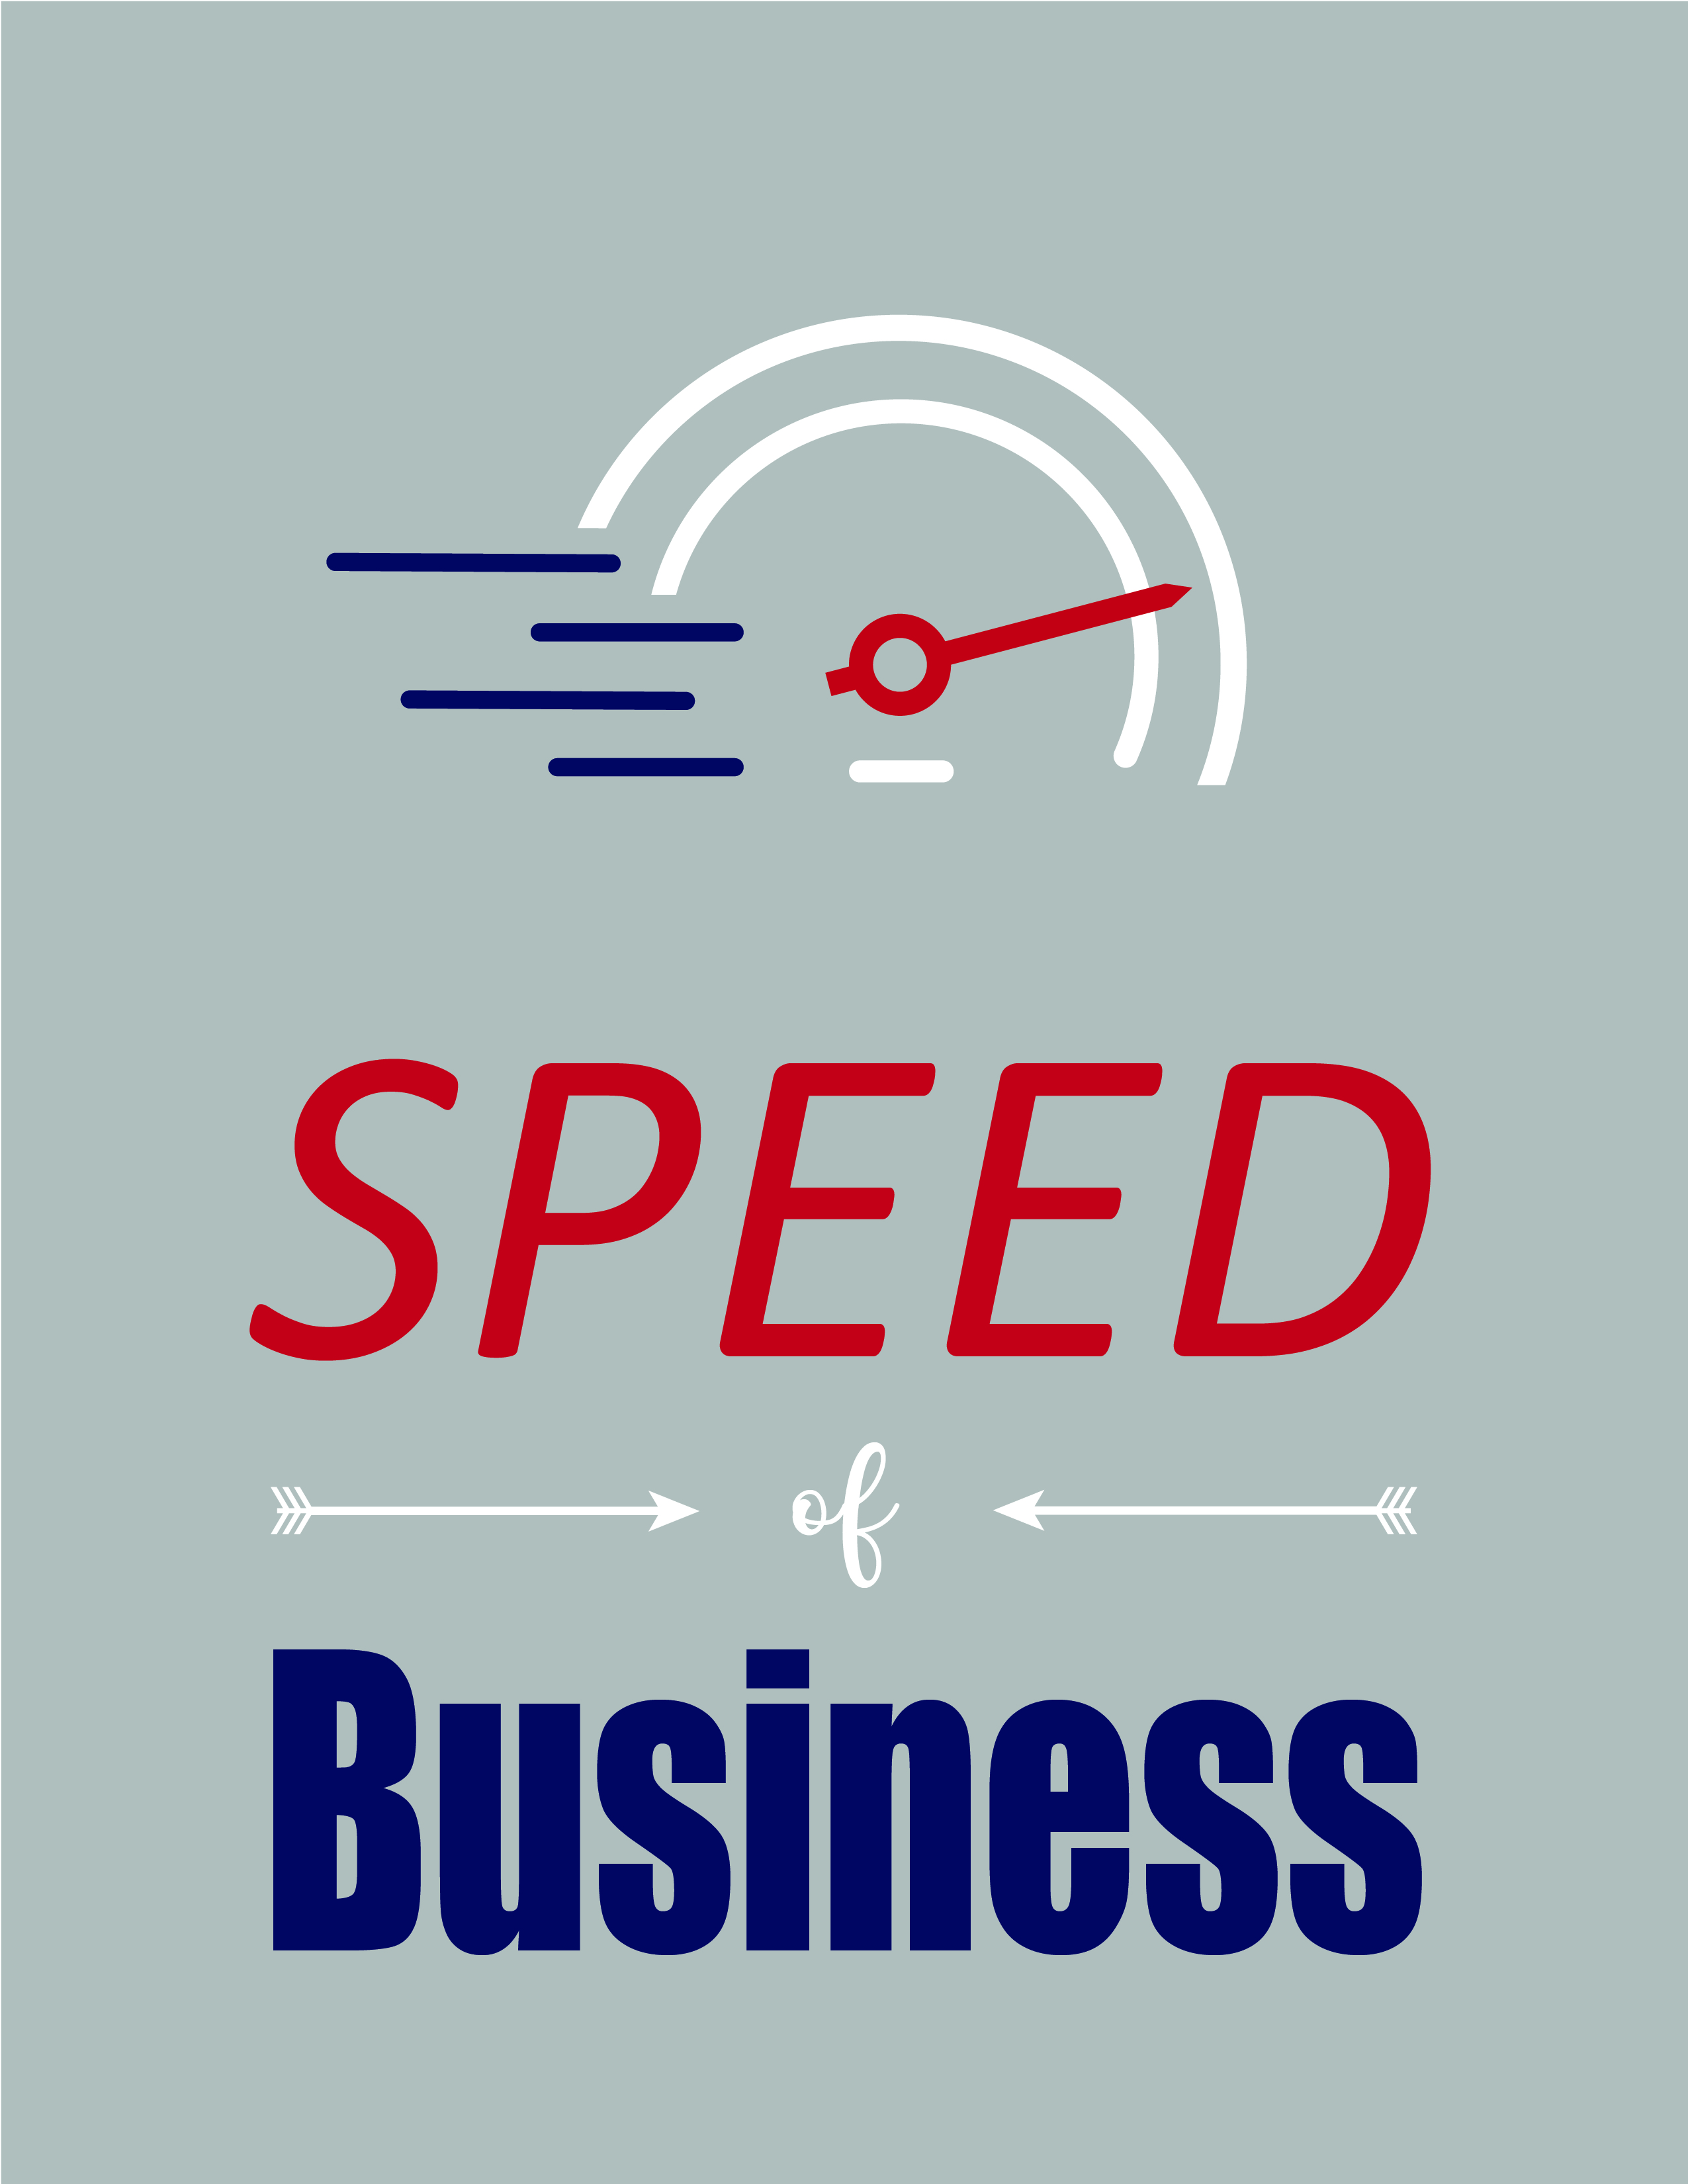 Speed of Business